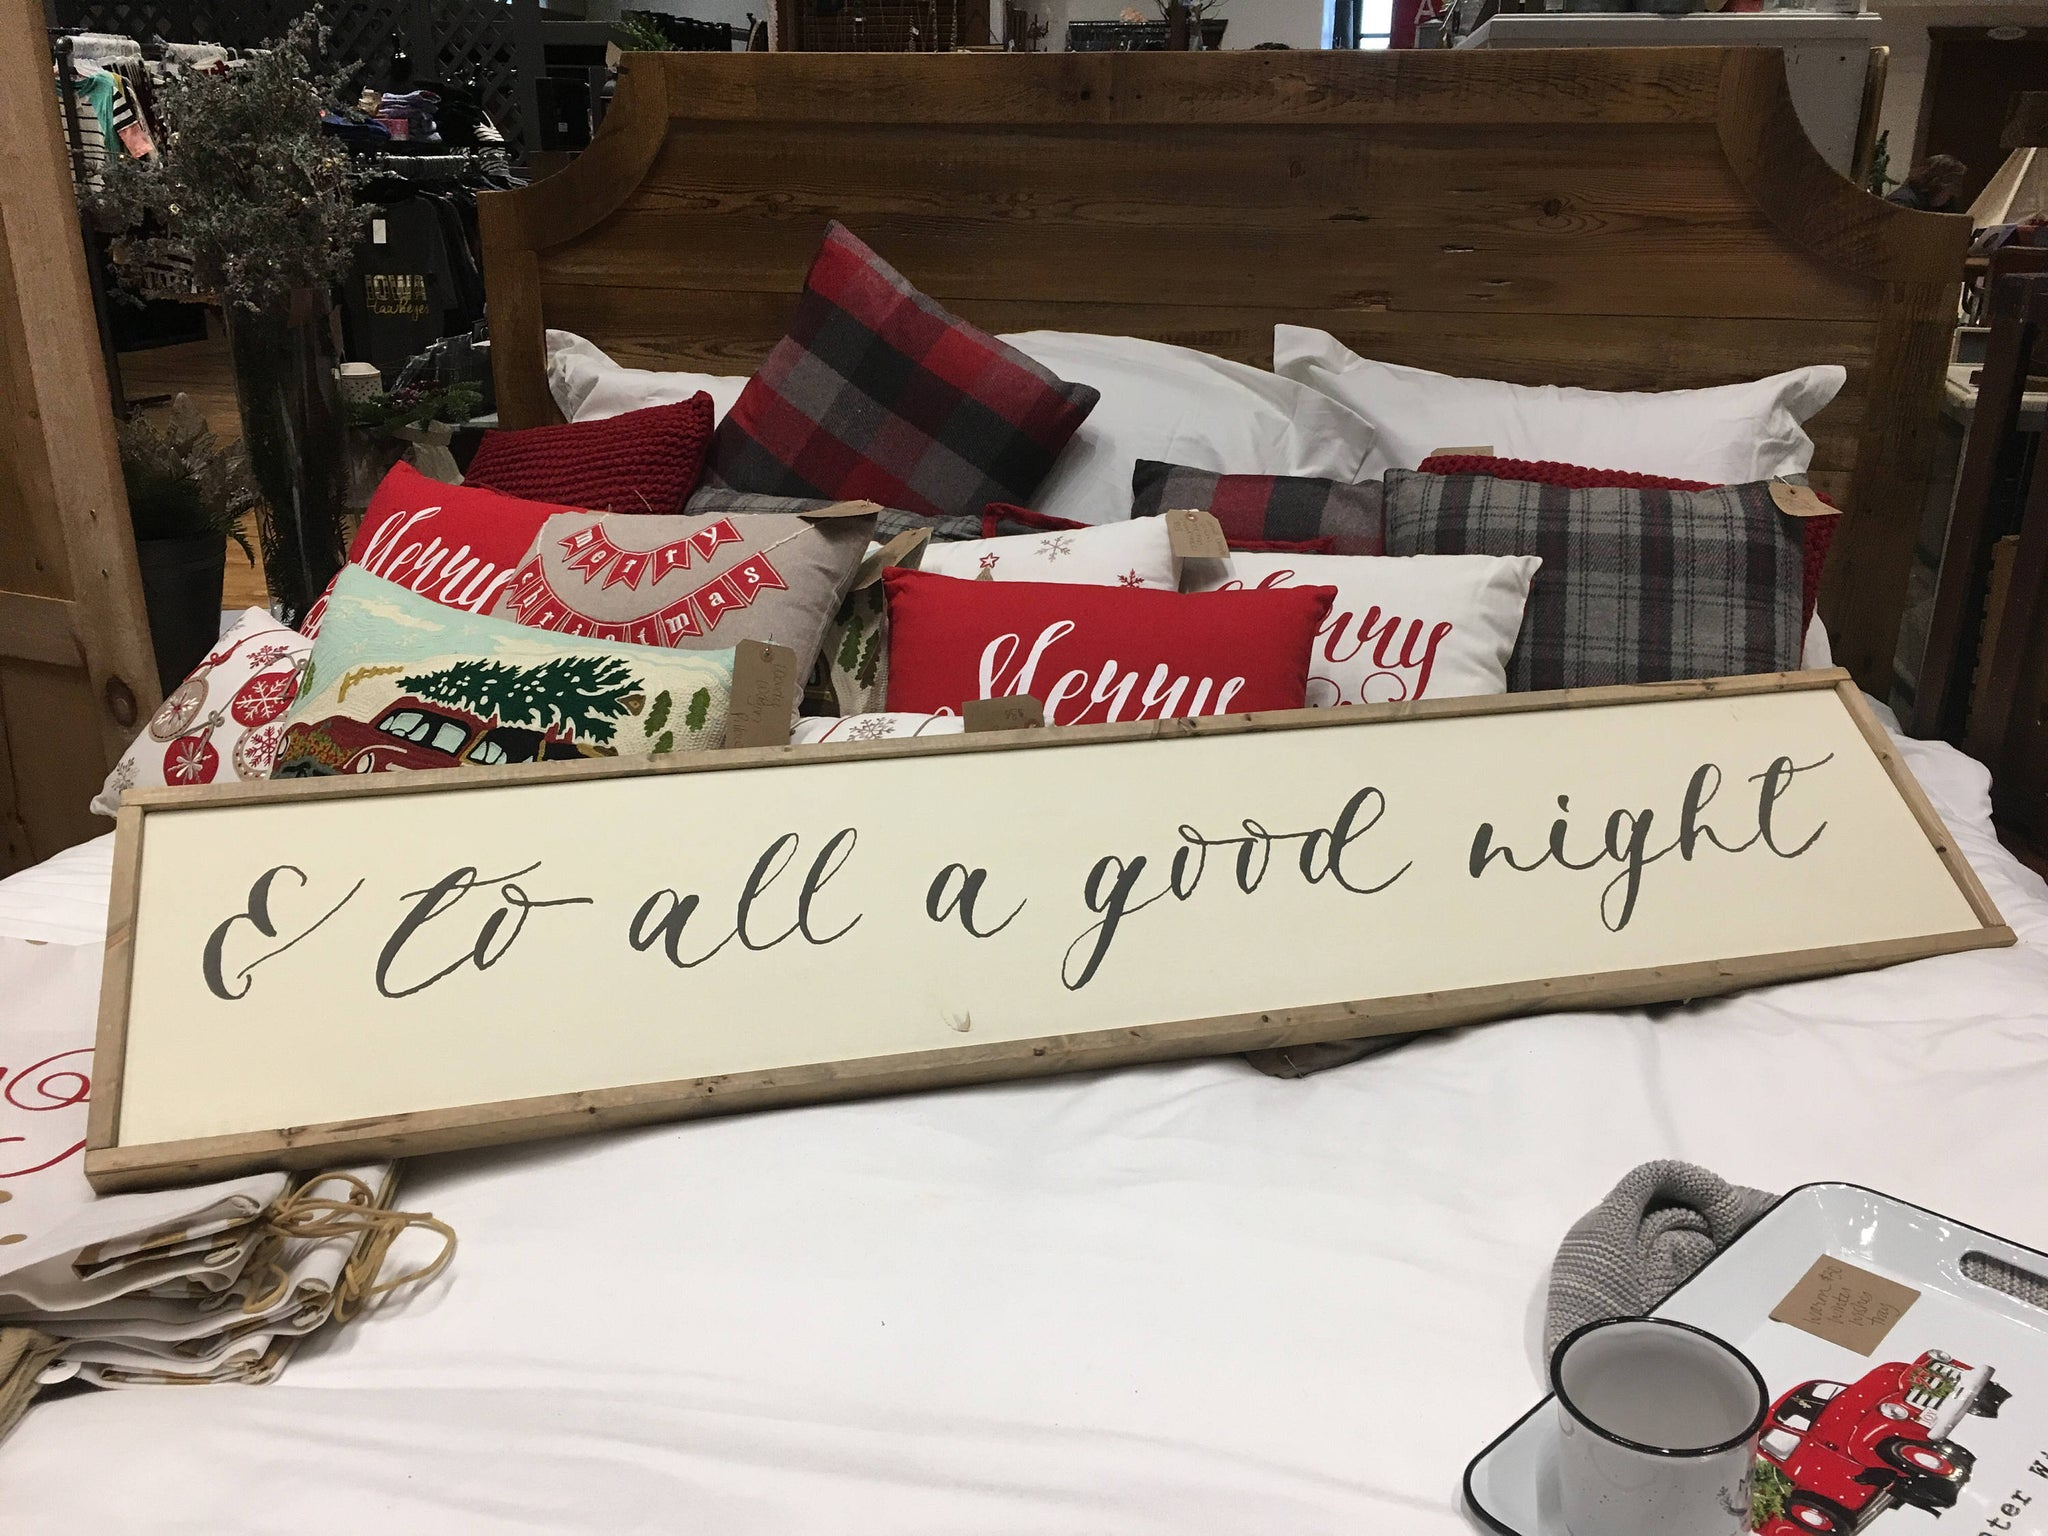 And To All a Good Night Wood Sign - Farmhouse - Christmas Decor- Bedroom Decor - Guest Room - Framed Sign - Home Decor